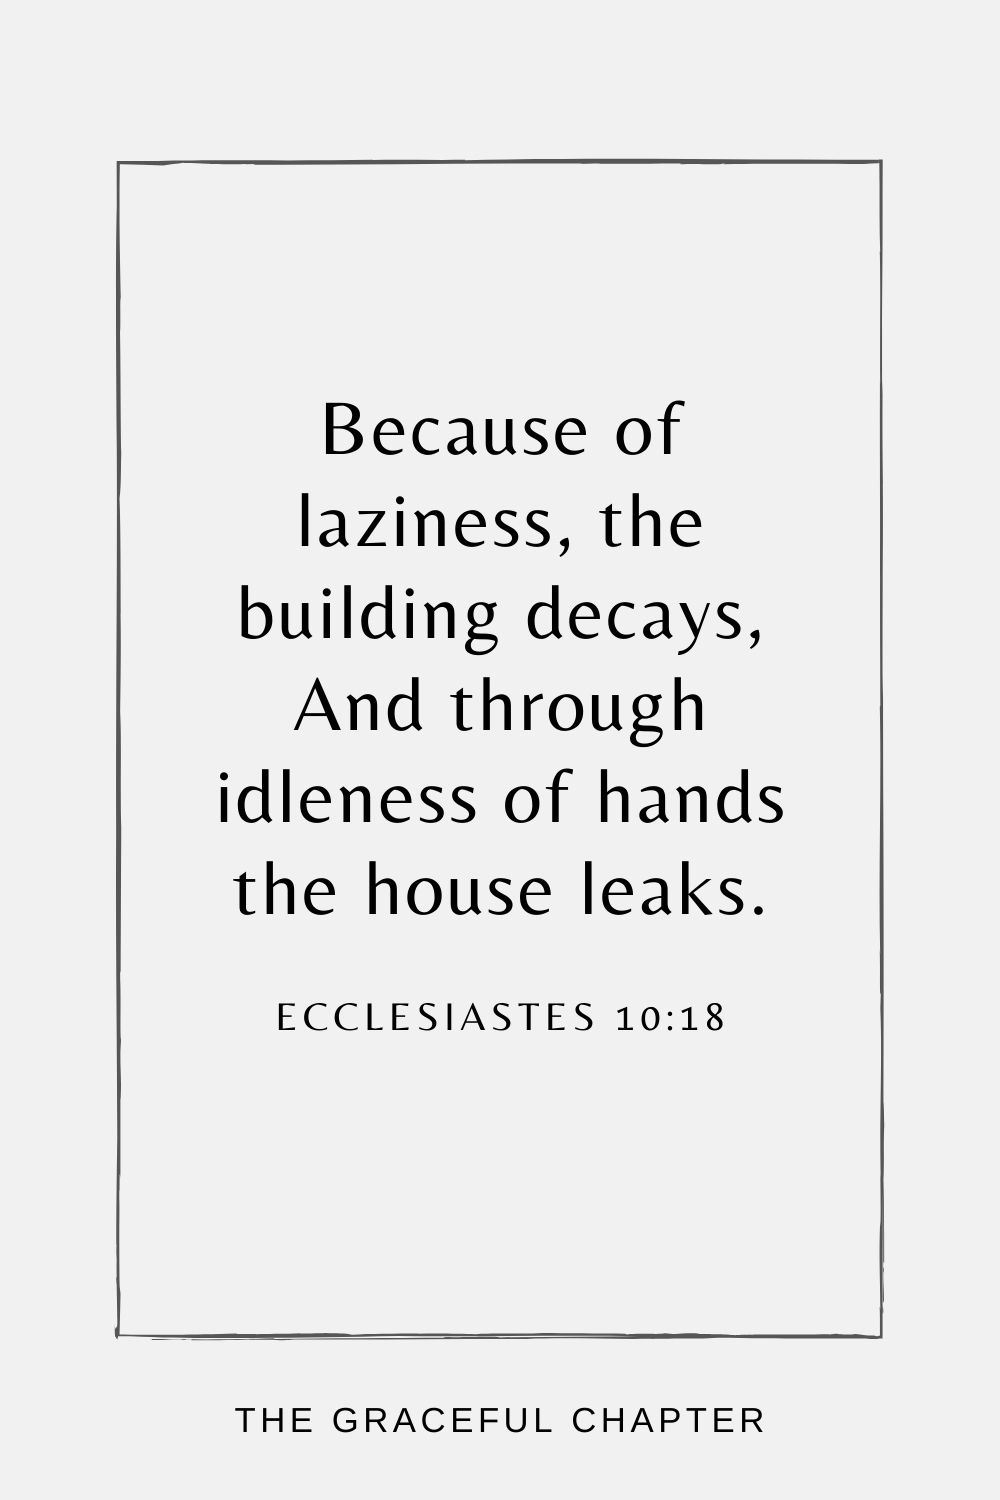 Because of laziness, the building decays, And through idleness of hands the house leaks. Ecclesiastes 10:18